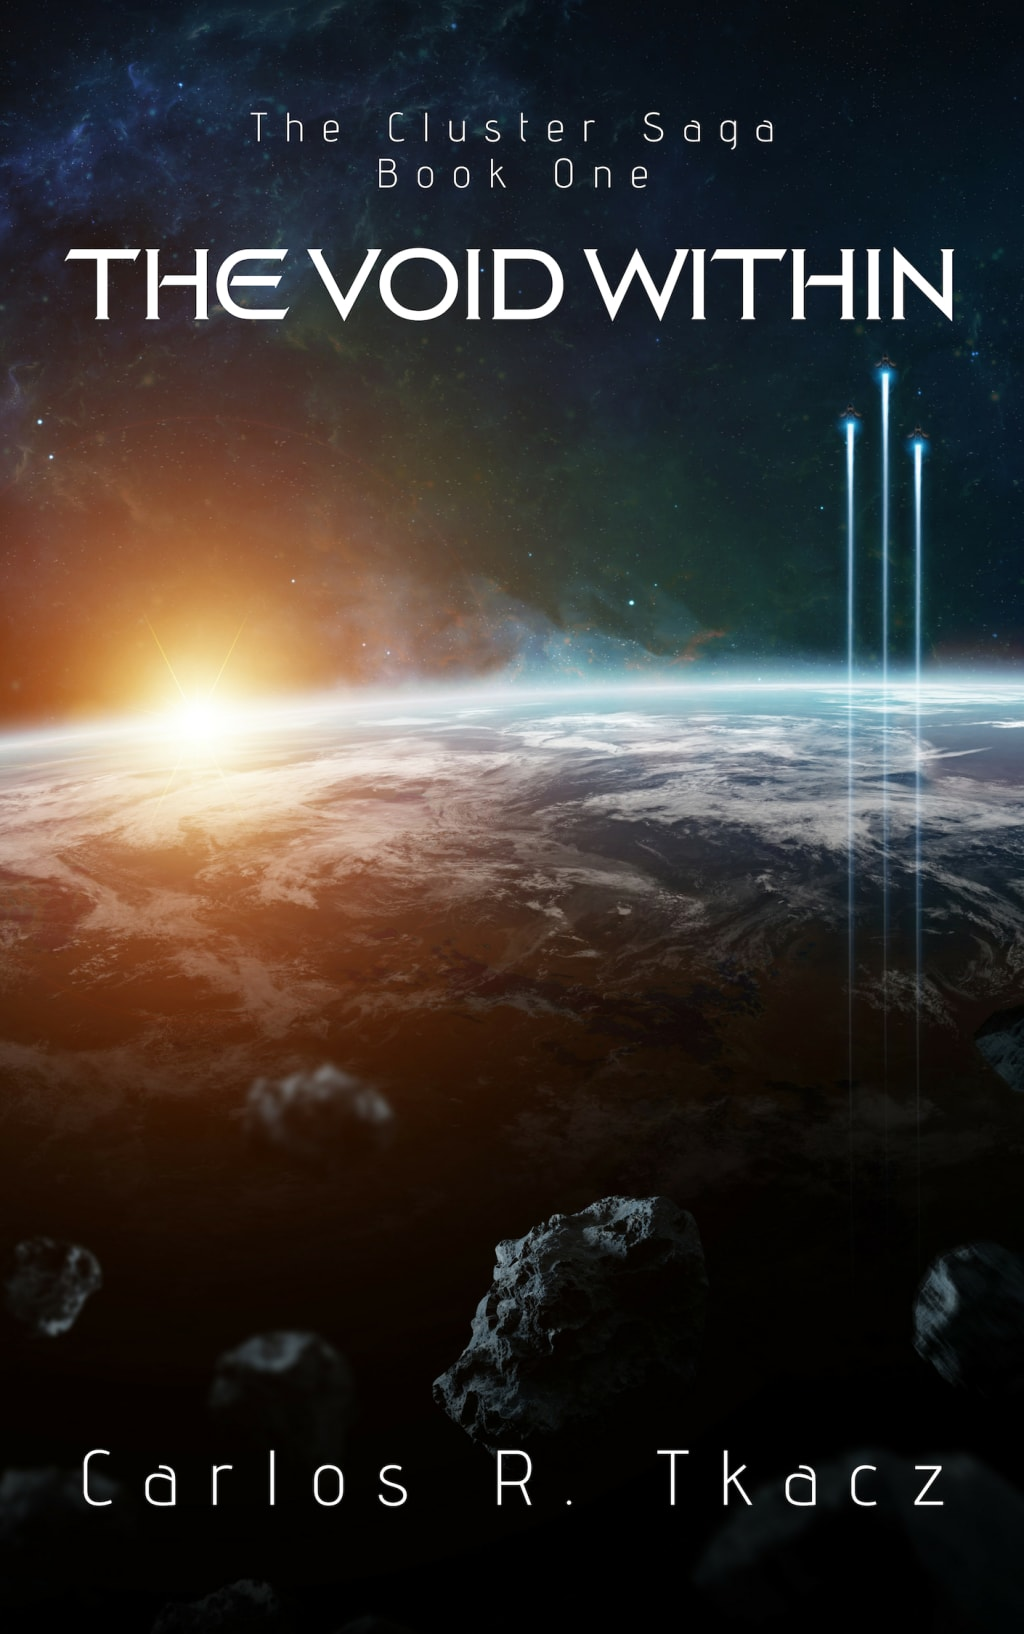 'The Void Within' Chapter 1